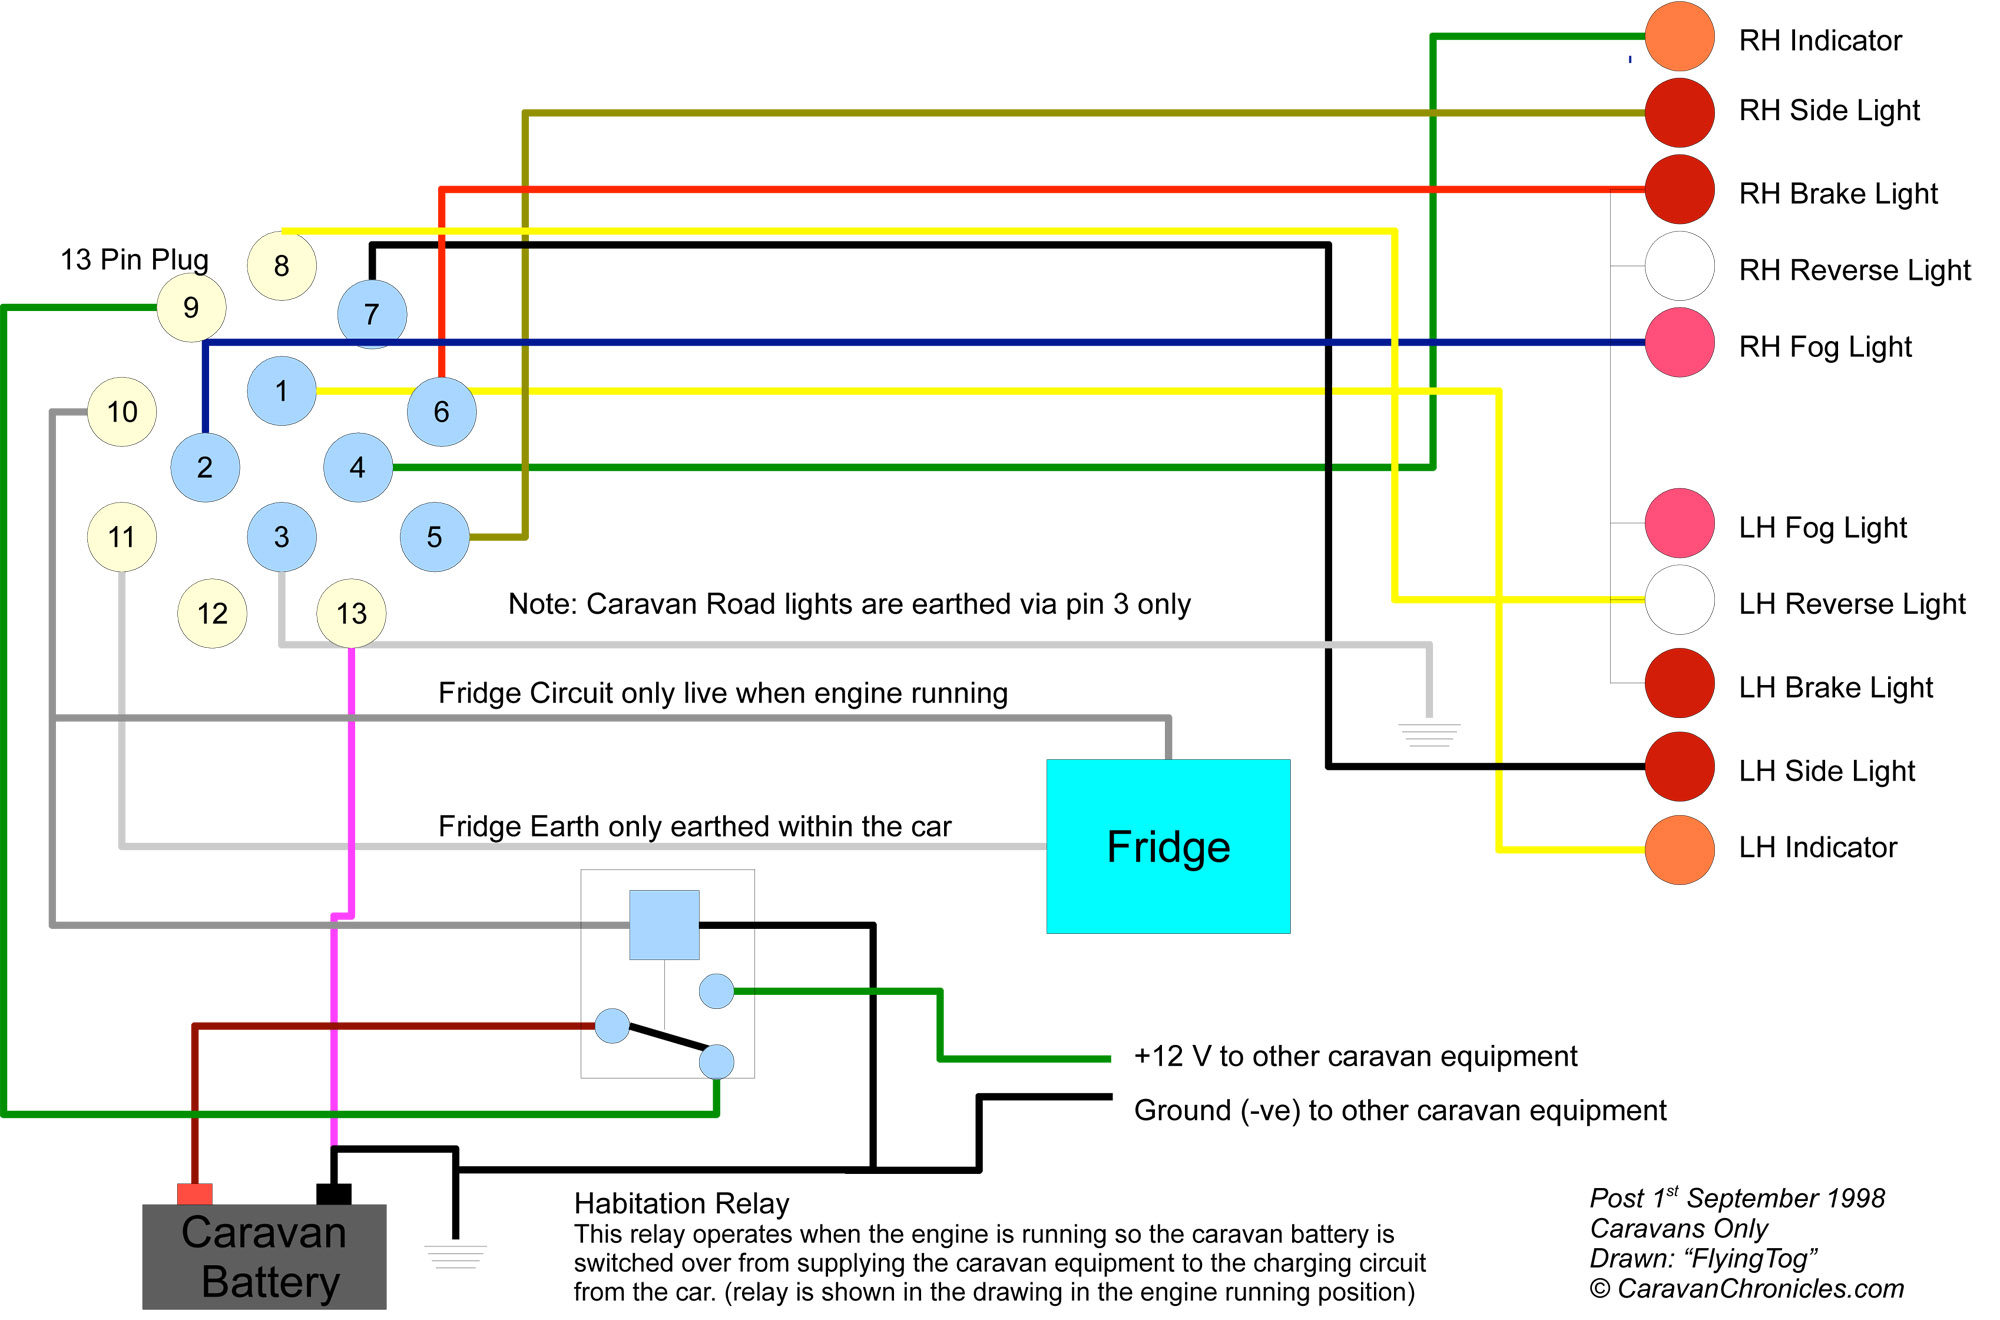 wiring diagram for caravan electrics 8b748 fuse box besides towbar wiring diagram 7 pin on layout for  fuse box besides towbar wiring diagram